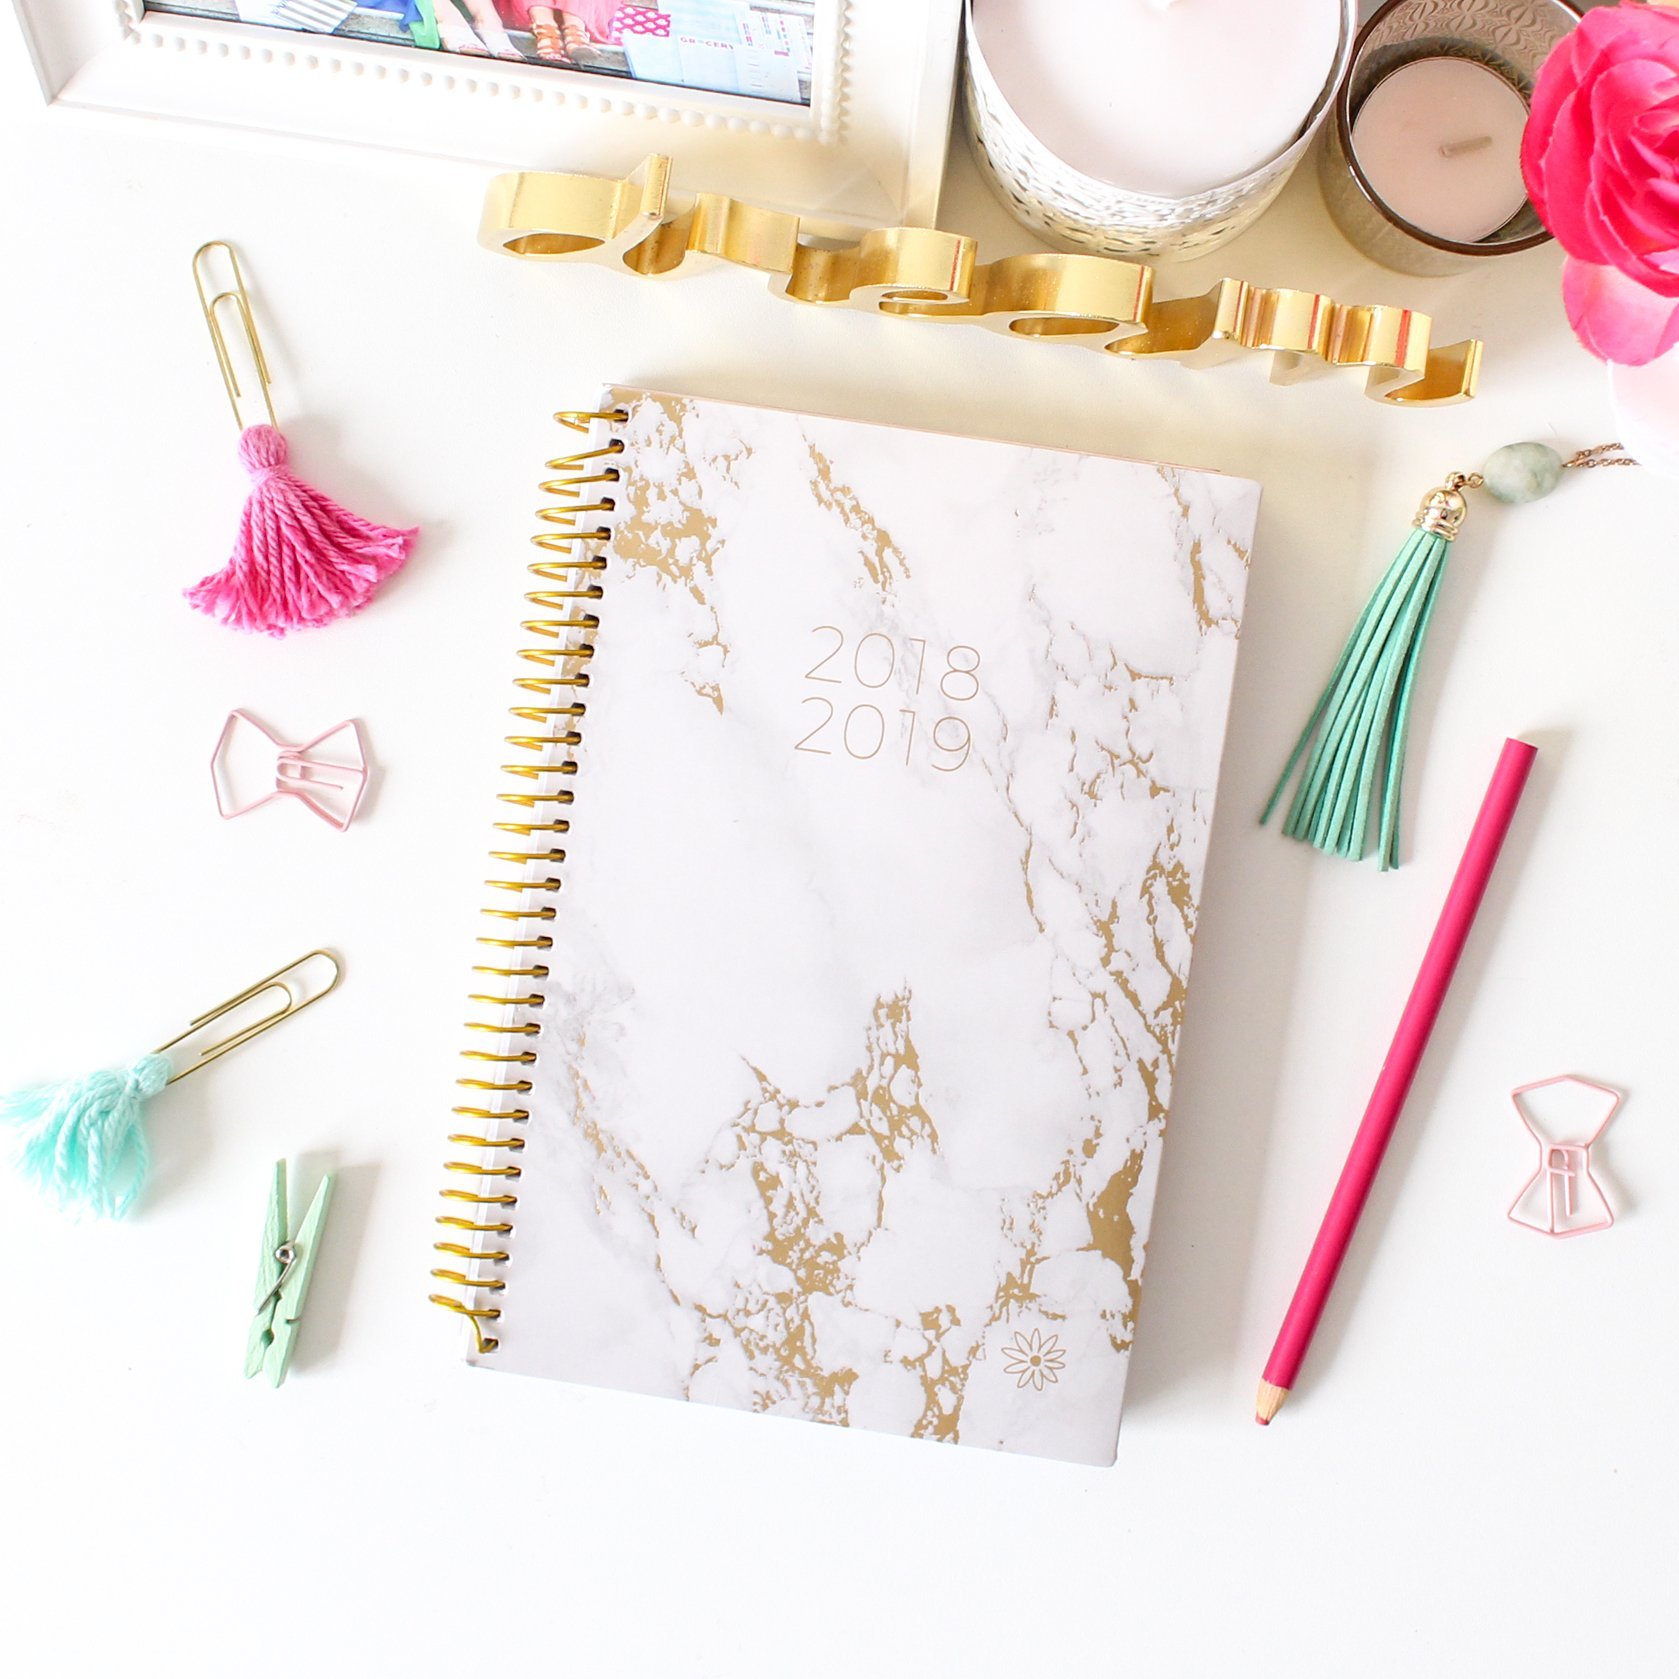 bloom daily planners 2018-2019 Academic Year Day Planner - Monthly and Weekly Calendar Book - Inspirational Dated Agenda Organizer - (August 2018 - July 2019) - 6'' x 8.25'' - Marble by bloom daily planners (Image #1)